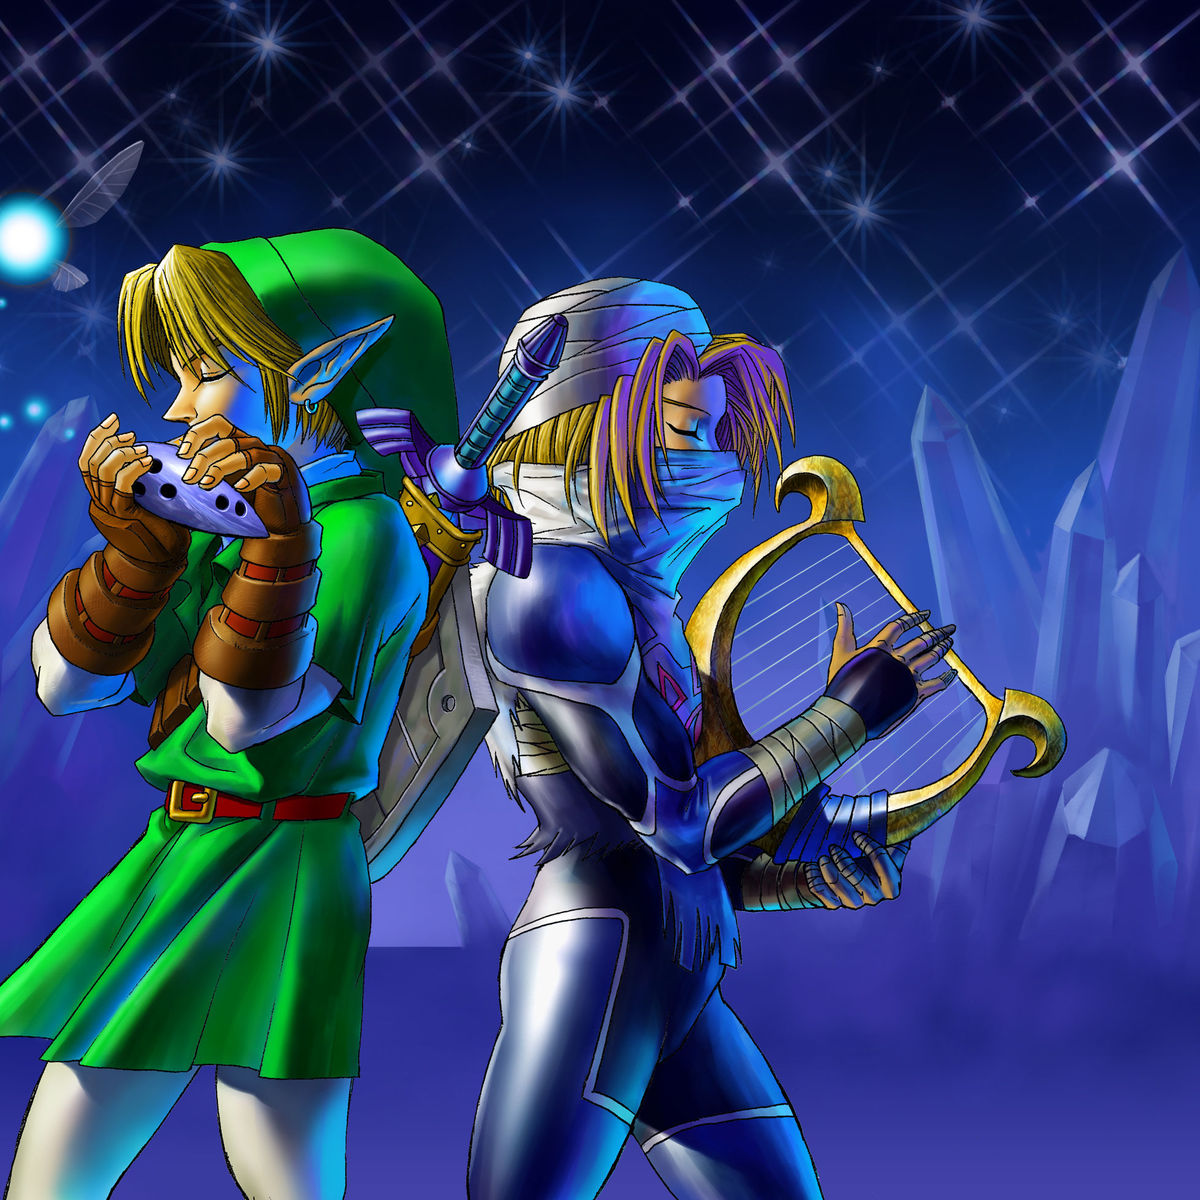 How the legend of zelda made me gay syfy wire